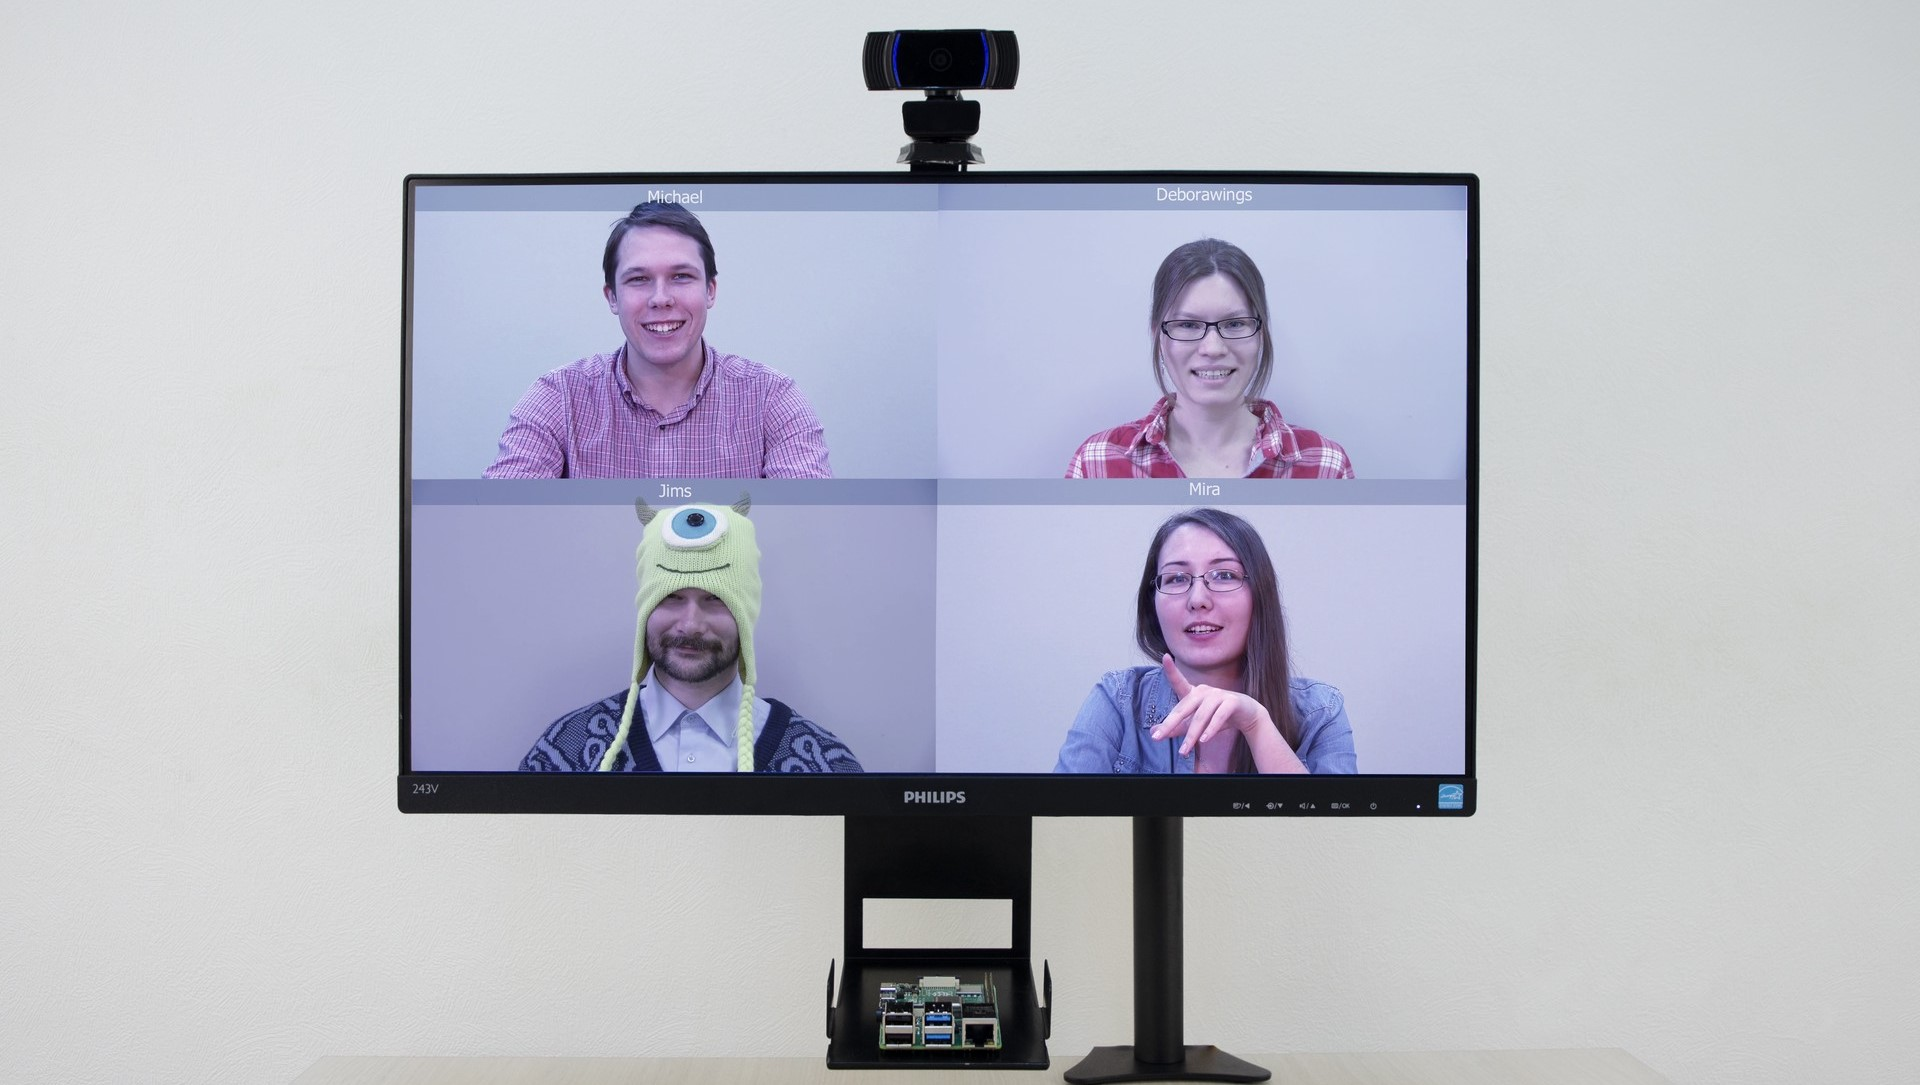 DIY Integration Kit by TrueConf: Build Your Own ARM-Based Video Conferencing Solution 2